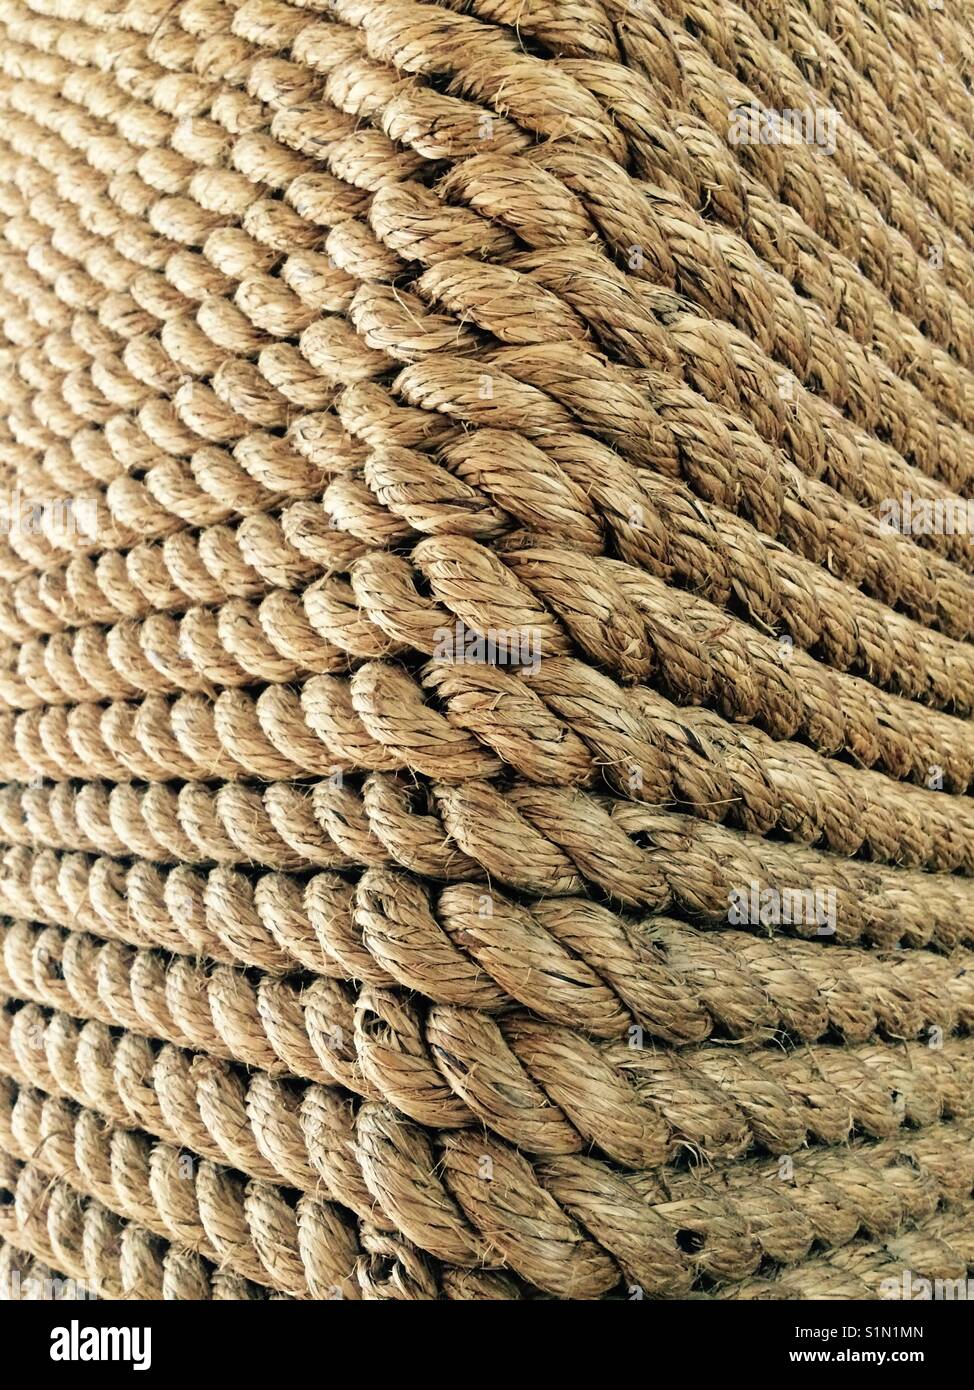 Rope wall - Stock Image